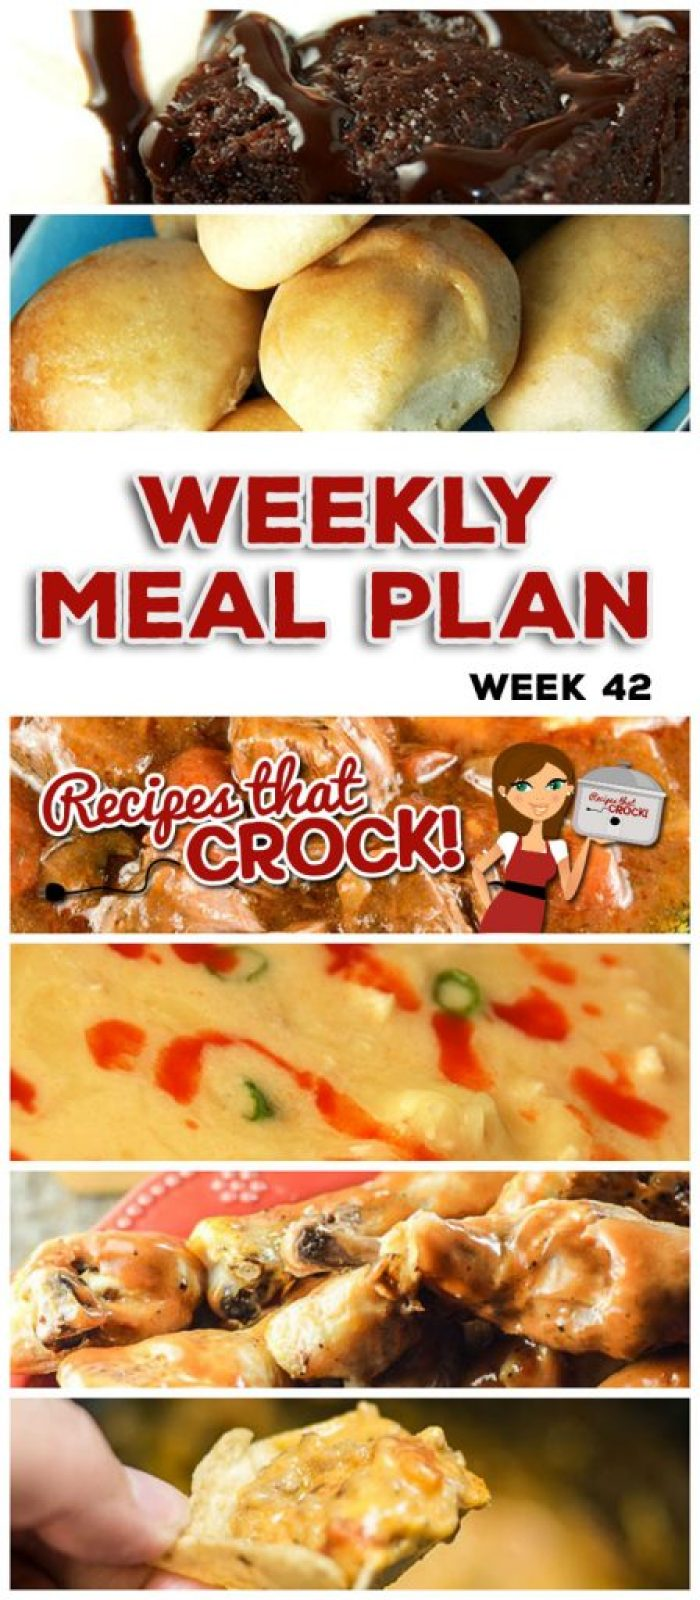 This week's weekly menu features Crock Pot Italian Pot Roast, Crock Pot Dinner Rolls, Crock Pot Root Beer Pulled Pork, Crock Pot Buffalo Chicken Soup, Crock Pot BBQ Ranch Chicken Legs, Crock Pot Pizza Burgers, Crock Pot Peanut Butter Jelly Casserole, Quadruple Chocolate Crock Pot Cake and Crock Pot Sausage Cheese Dip.